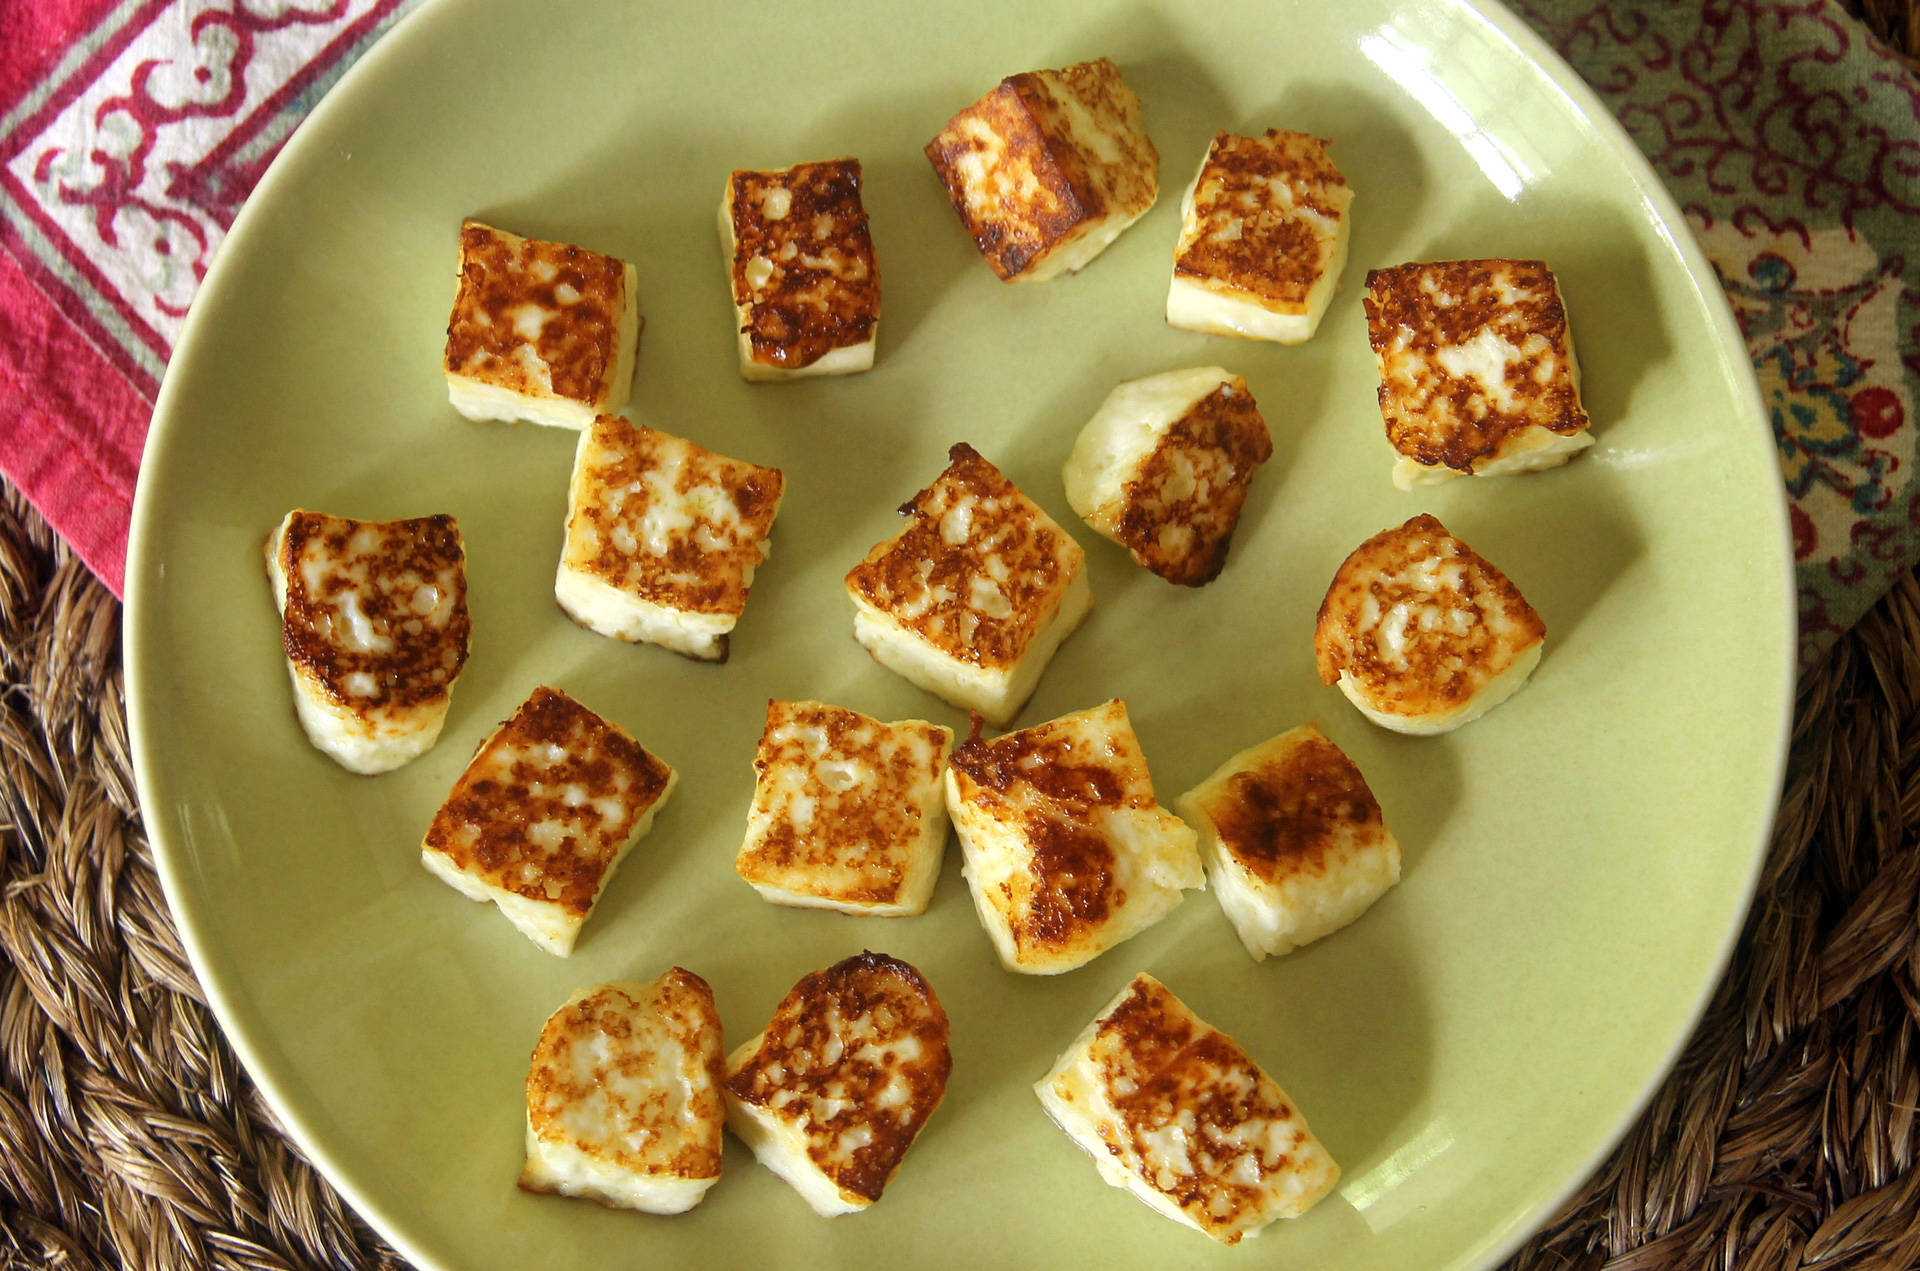 Homemade paneer, seared in olive oil